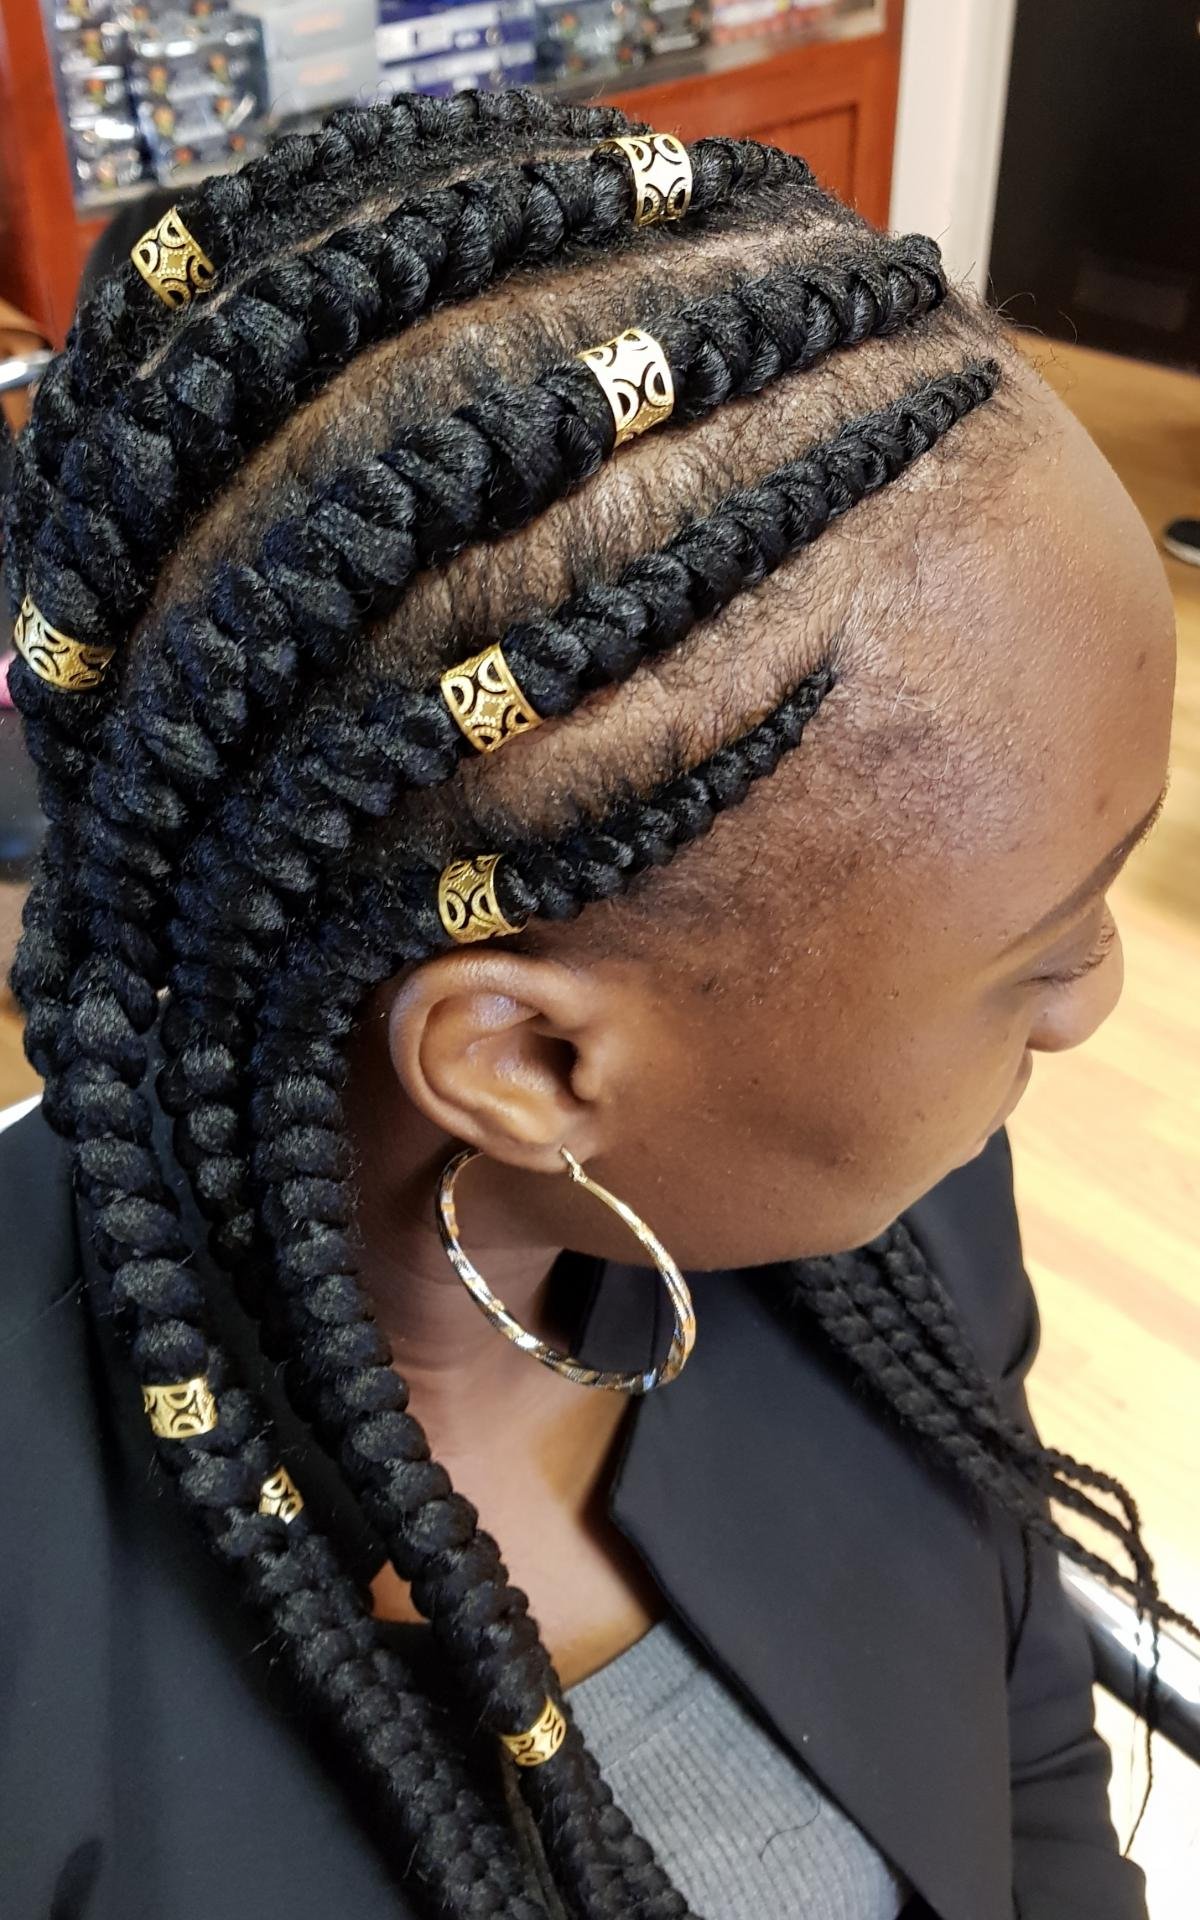 Coiffure Africaine Les Nattes Tresses Collées Tresses Africaines